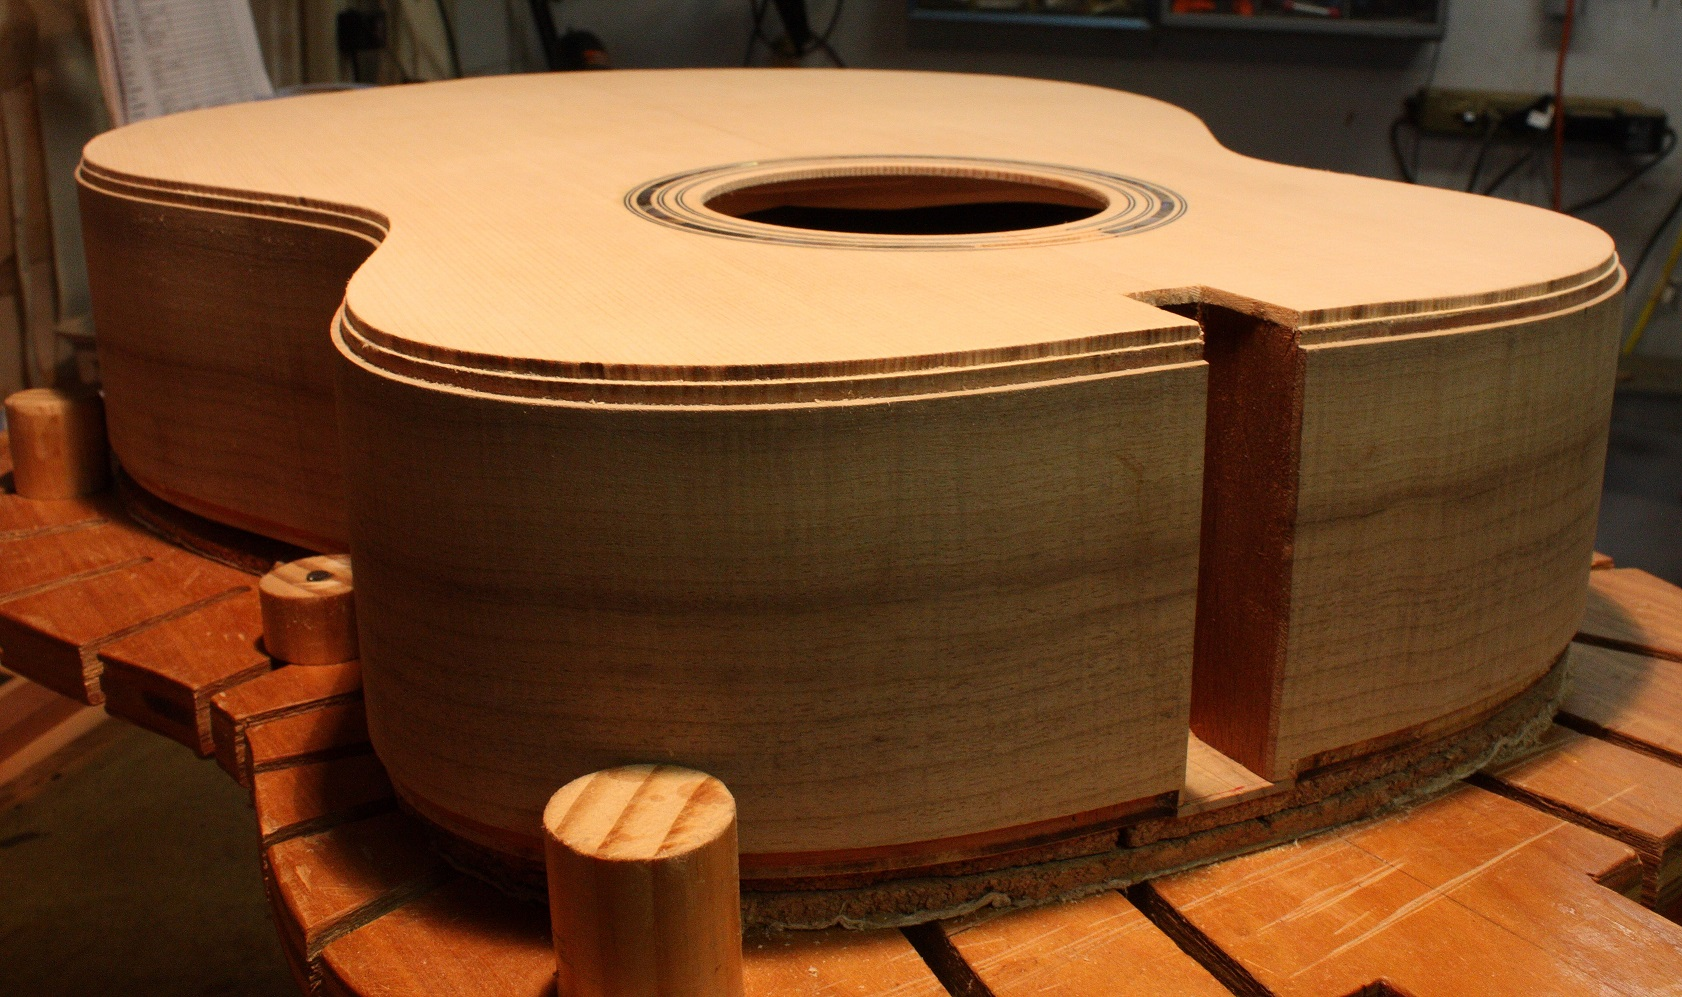 The binding and purfling channels have been routed in the top and side.